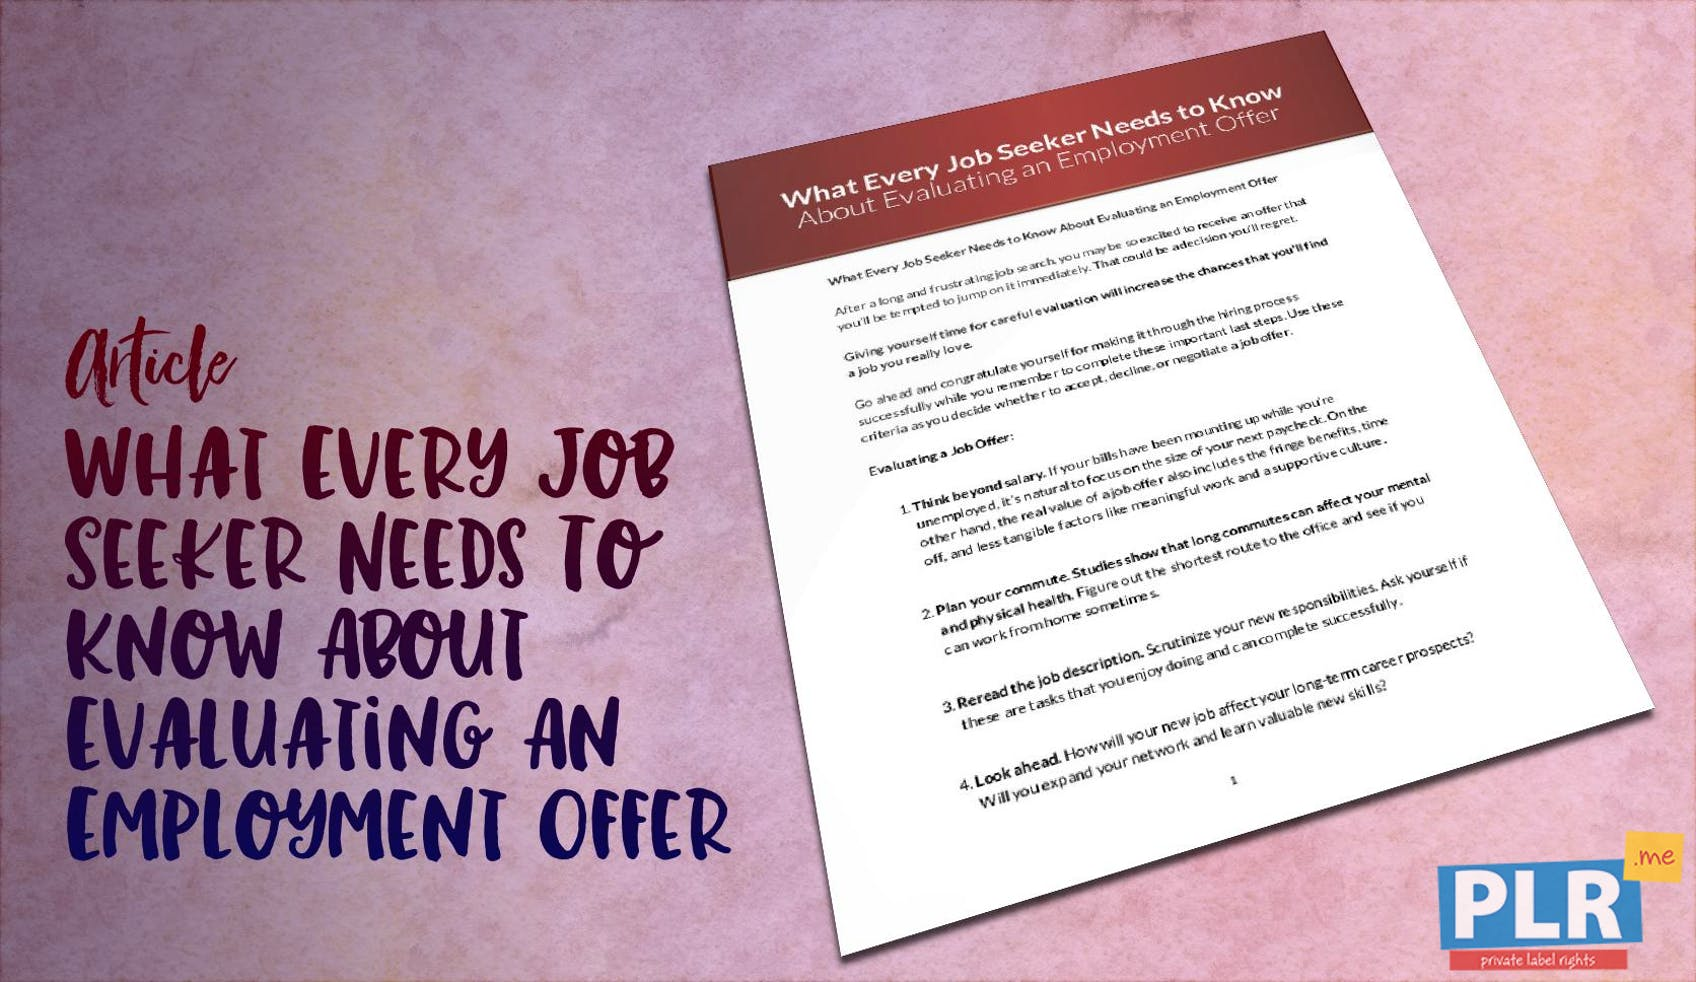 What Every Job Seeker Needs To Know About Evaluating An Employment Offer